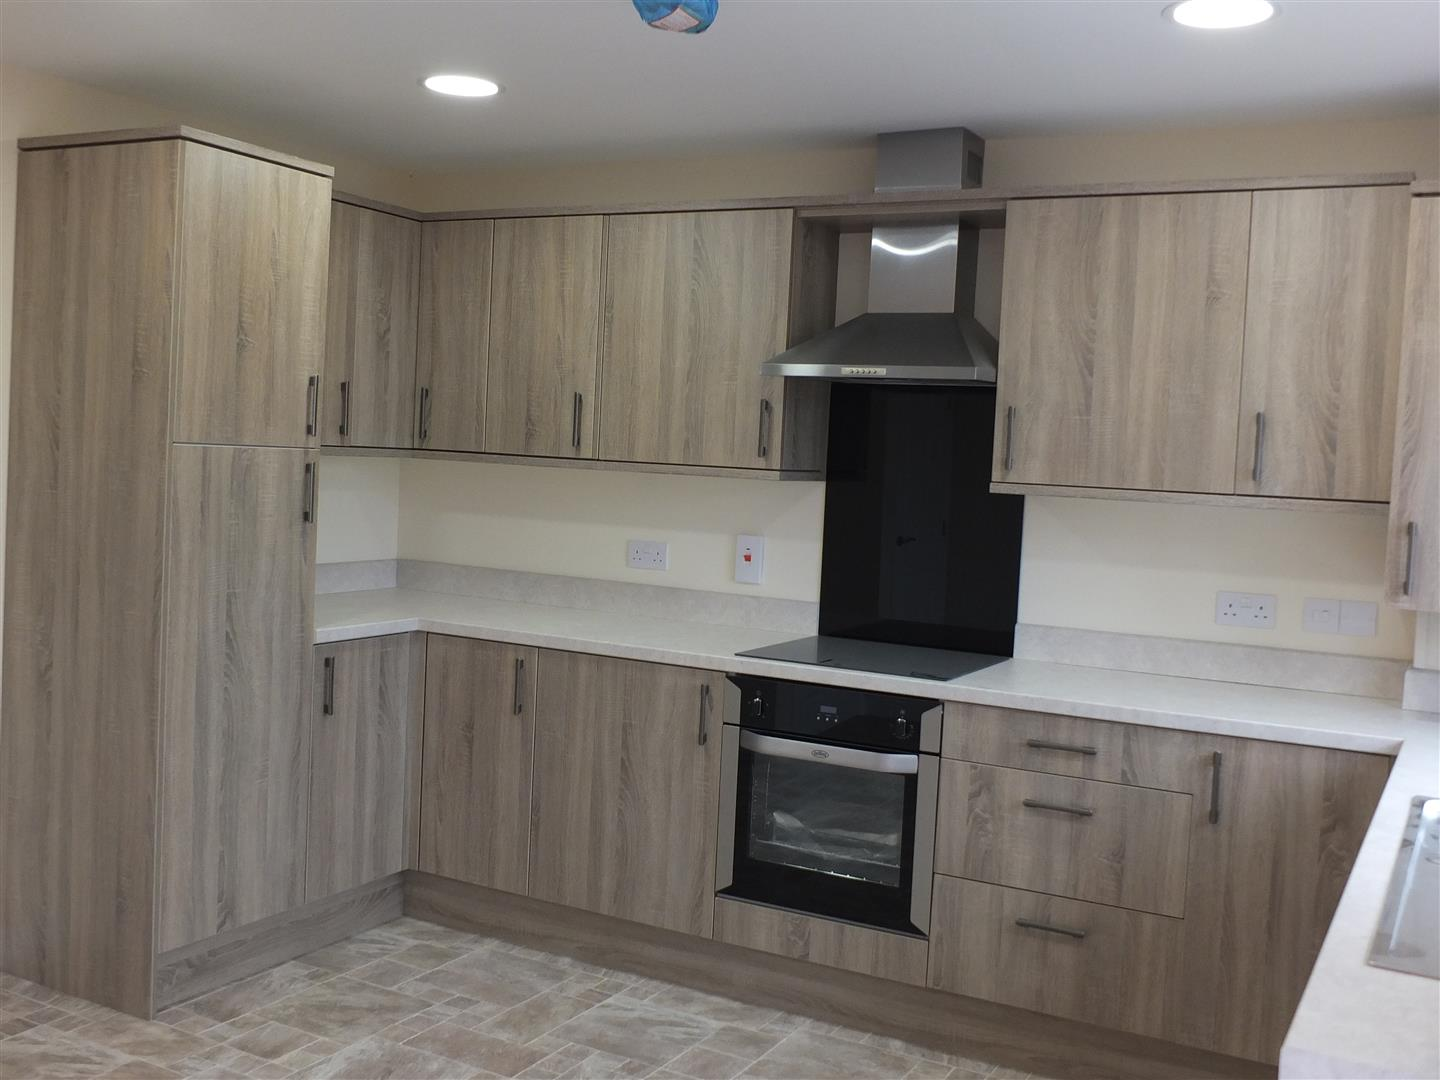 3 bed house to rent in Long Sutton, PE12 9LE 4